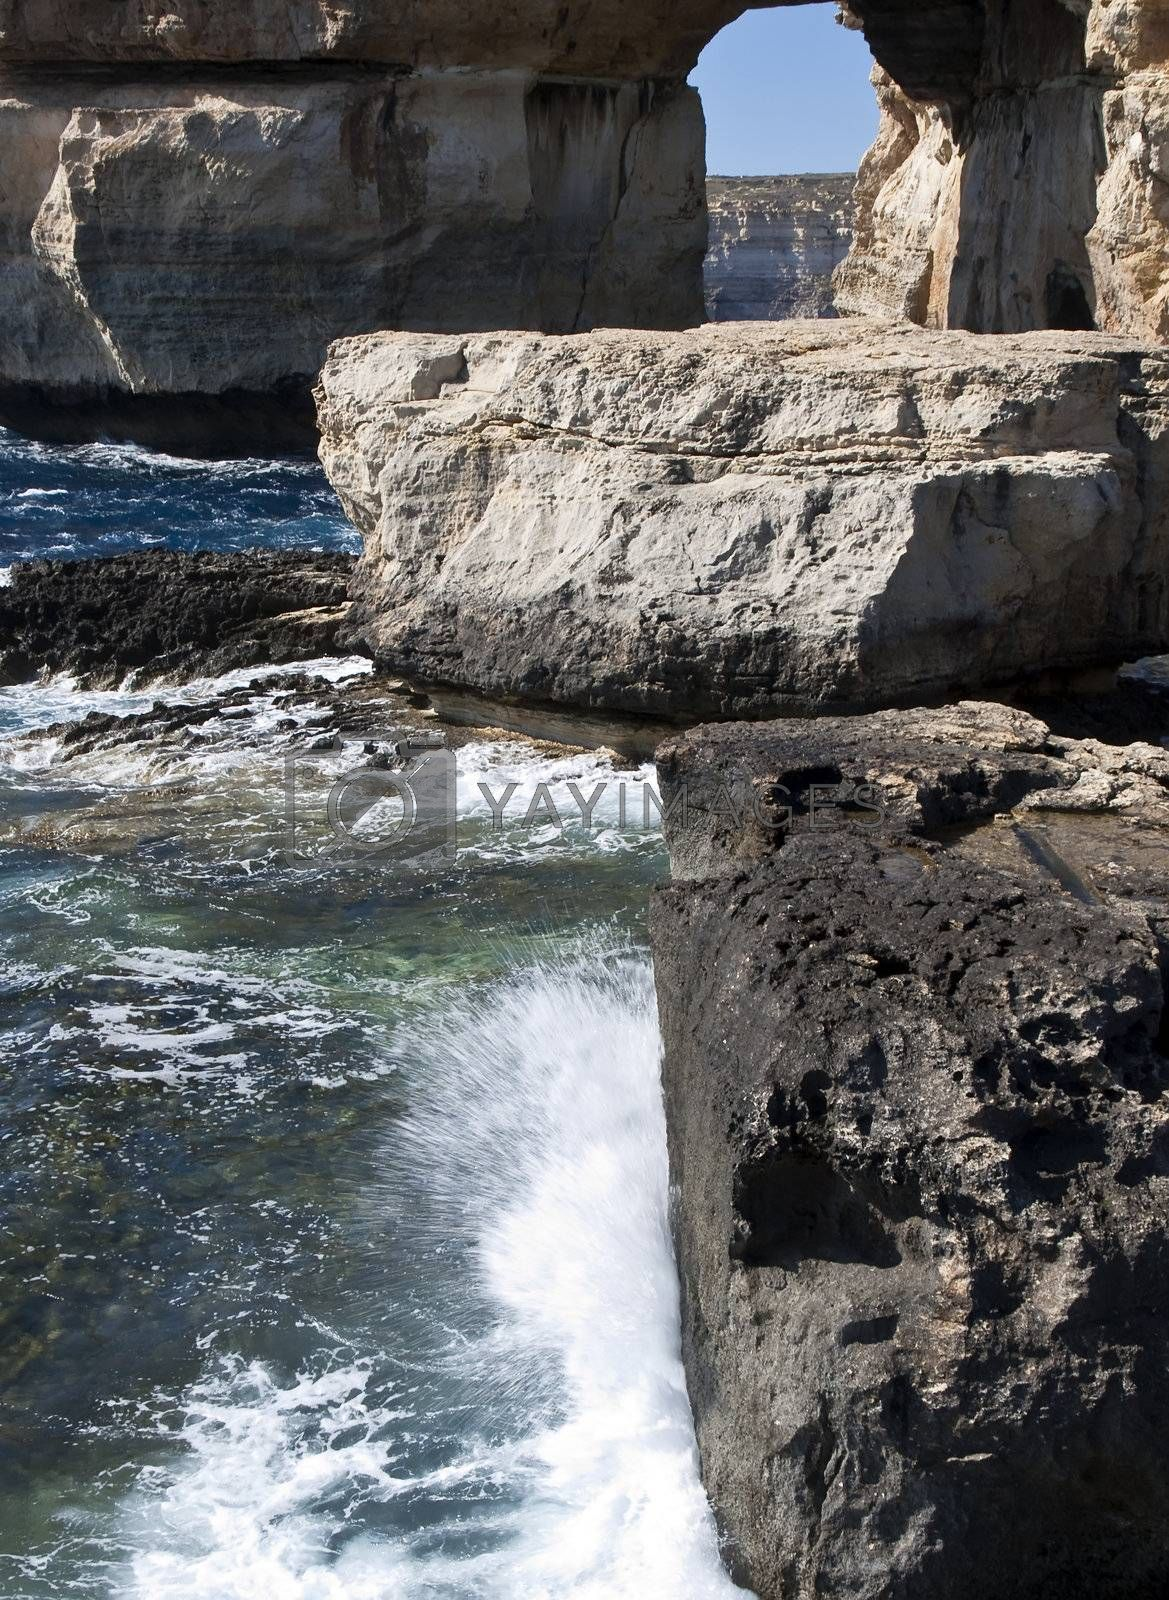 Royalty free image of The Azure Window and Blue Hole by PhotoWorks